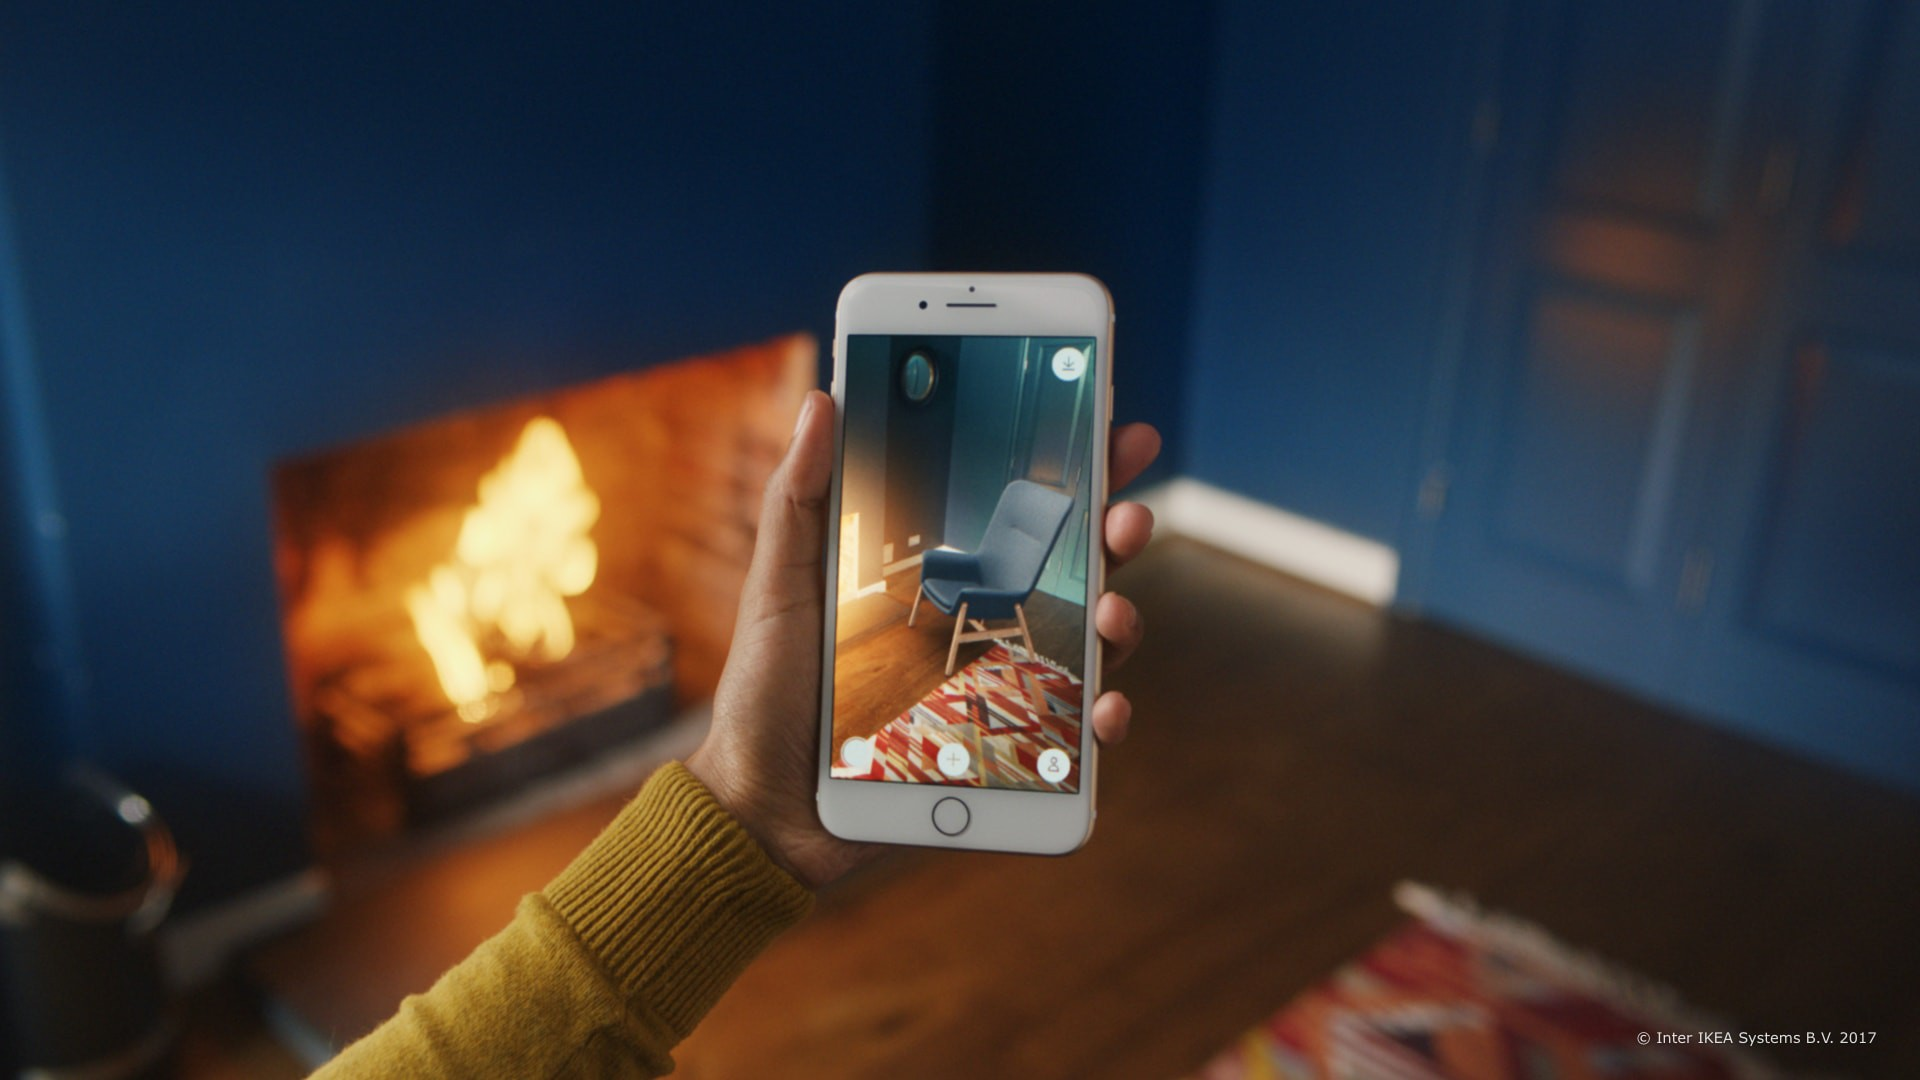 IKEA Launches New AR App To Virtually